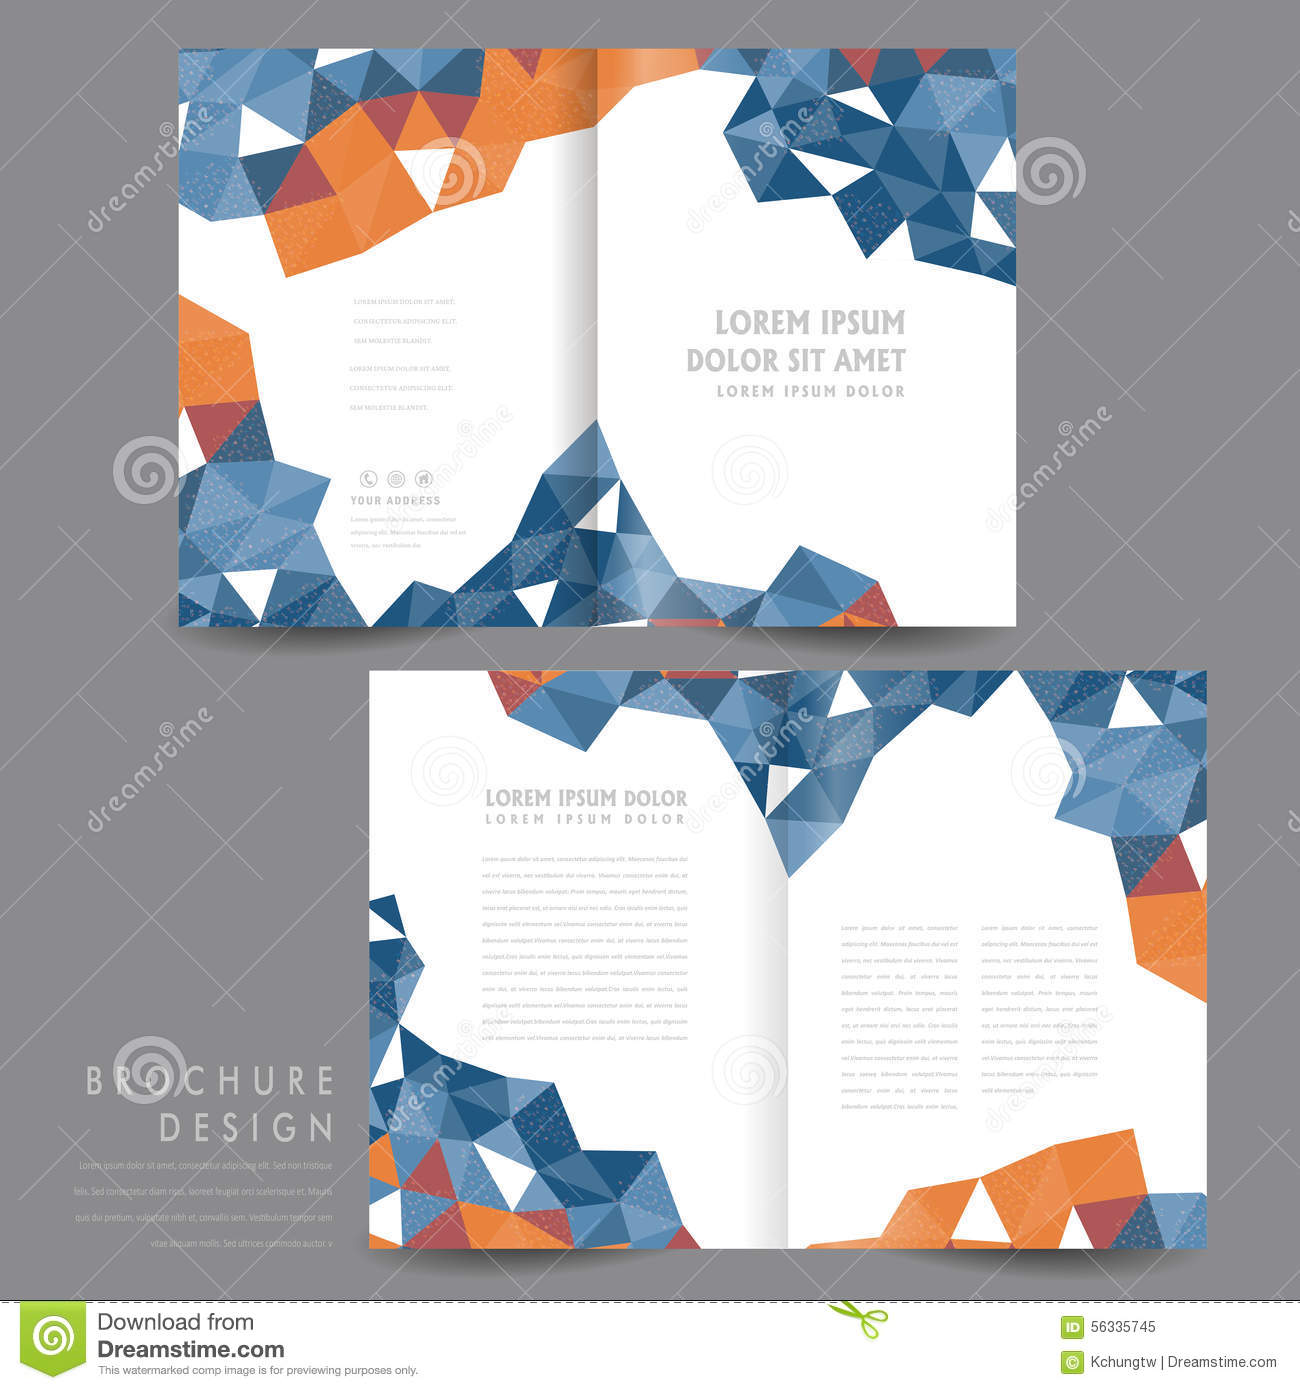 Attractive Halffold Brochure Template Design Stock Vector - Free half fold brochure template